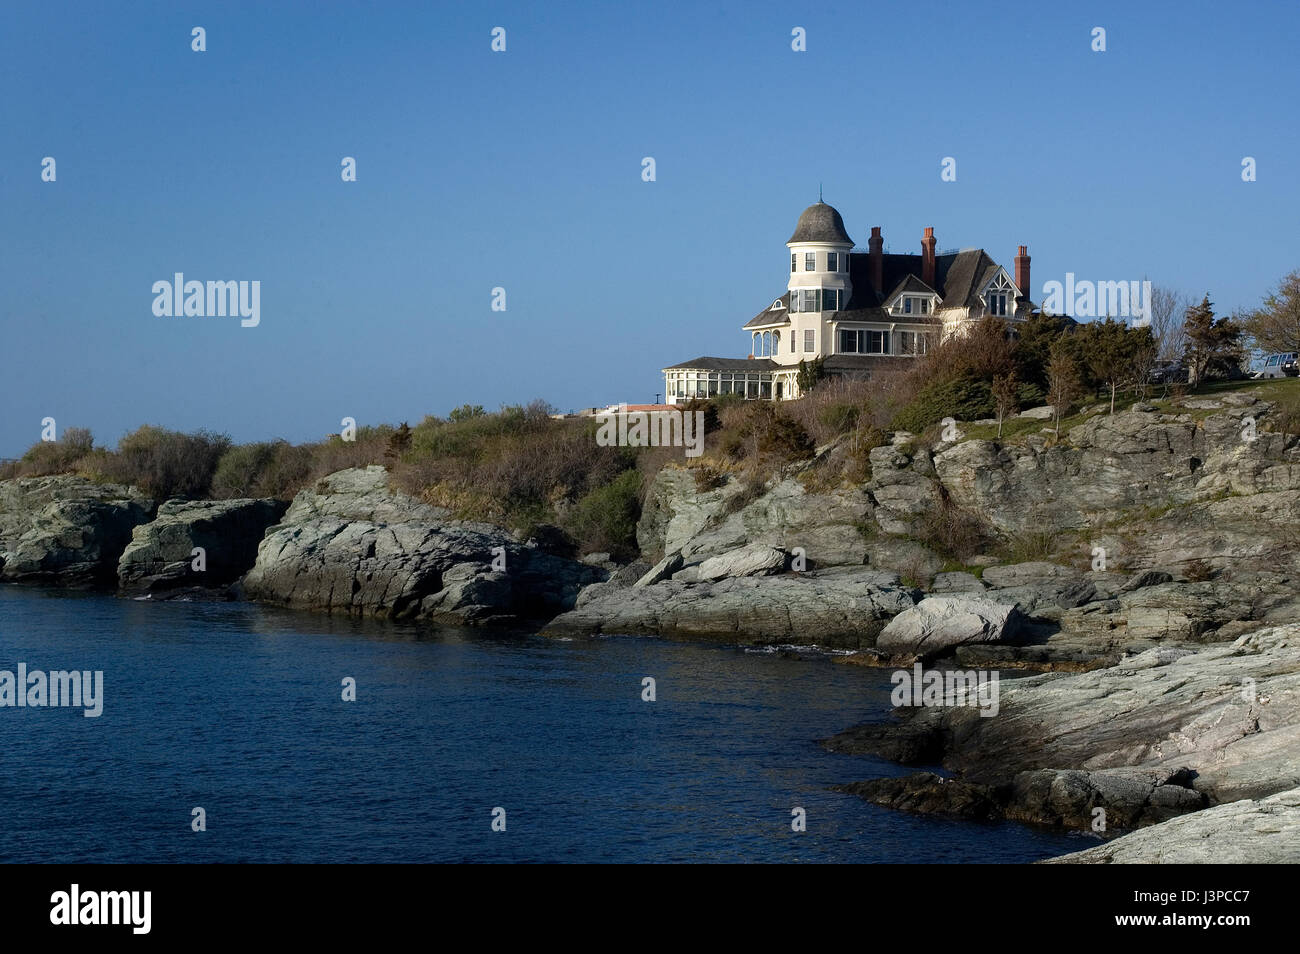 The Inn at Castle Hill - Newport, Rhode Island, USA - Stock Image